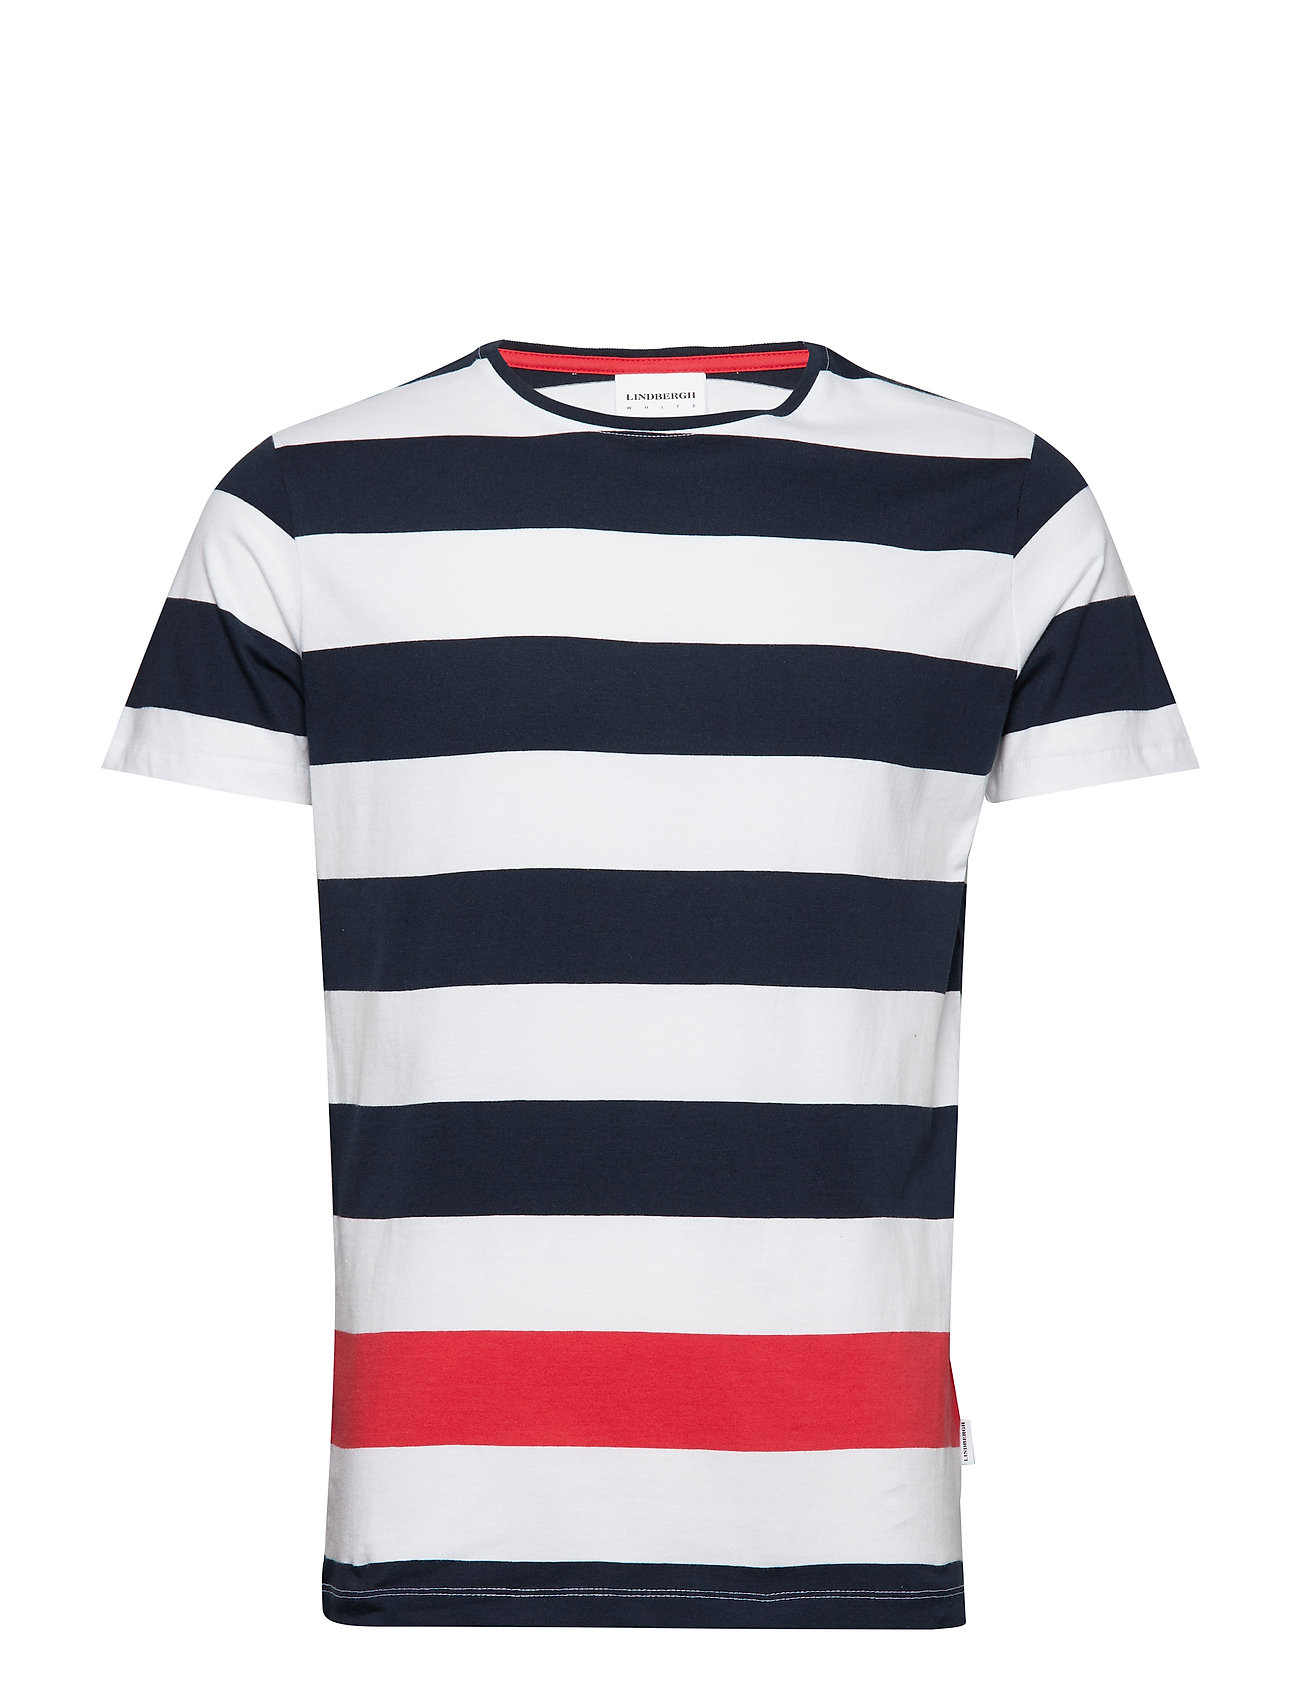 snavyLindbergh Tee S Striped Tee Striped S y8nNmv0wO